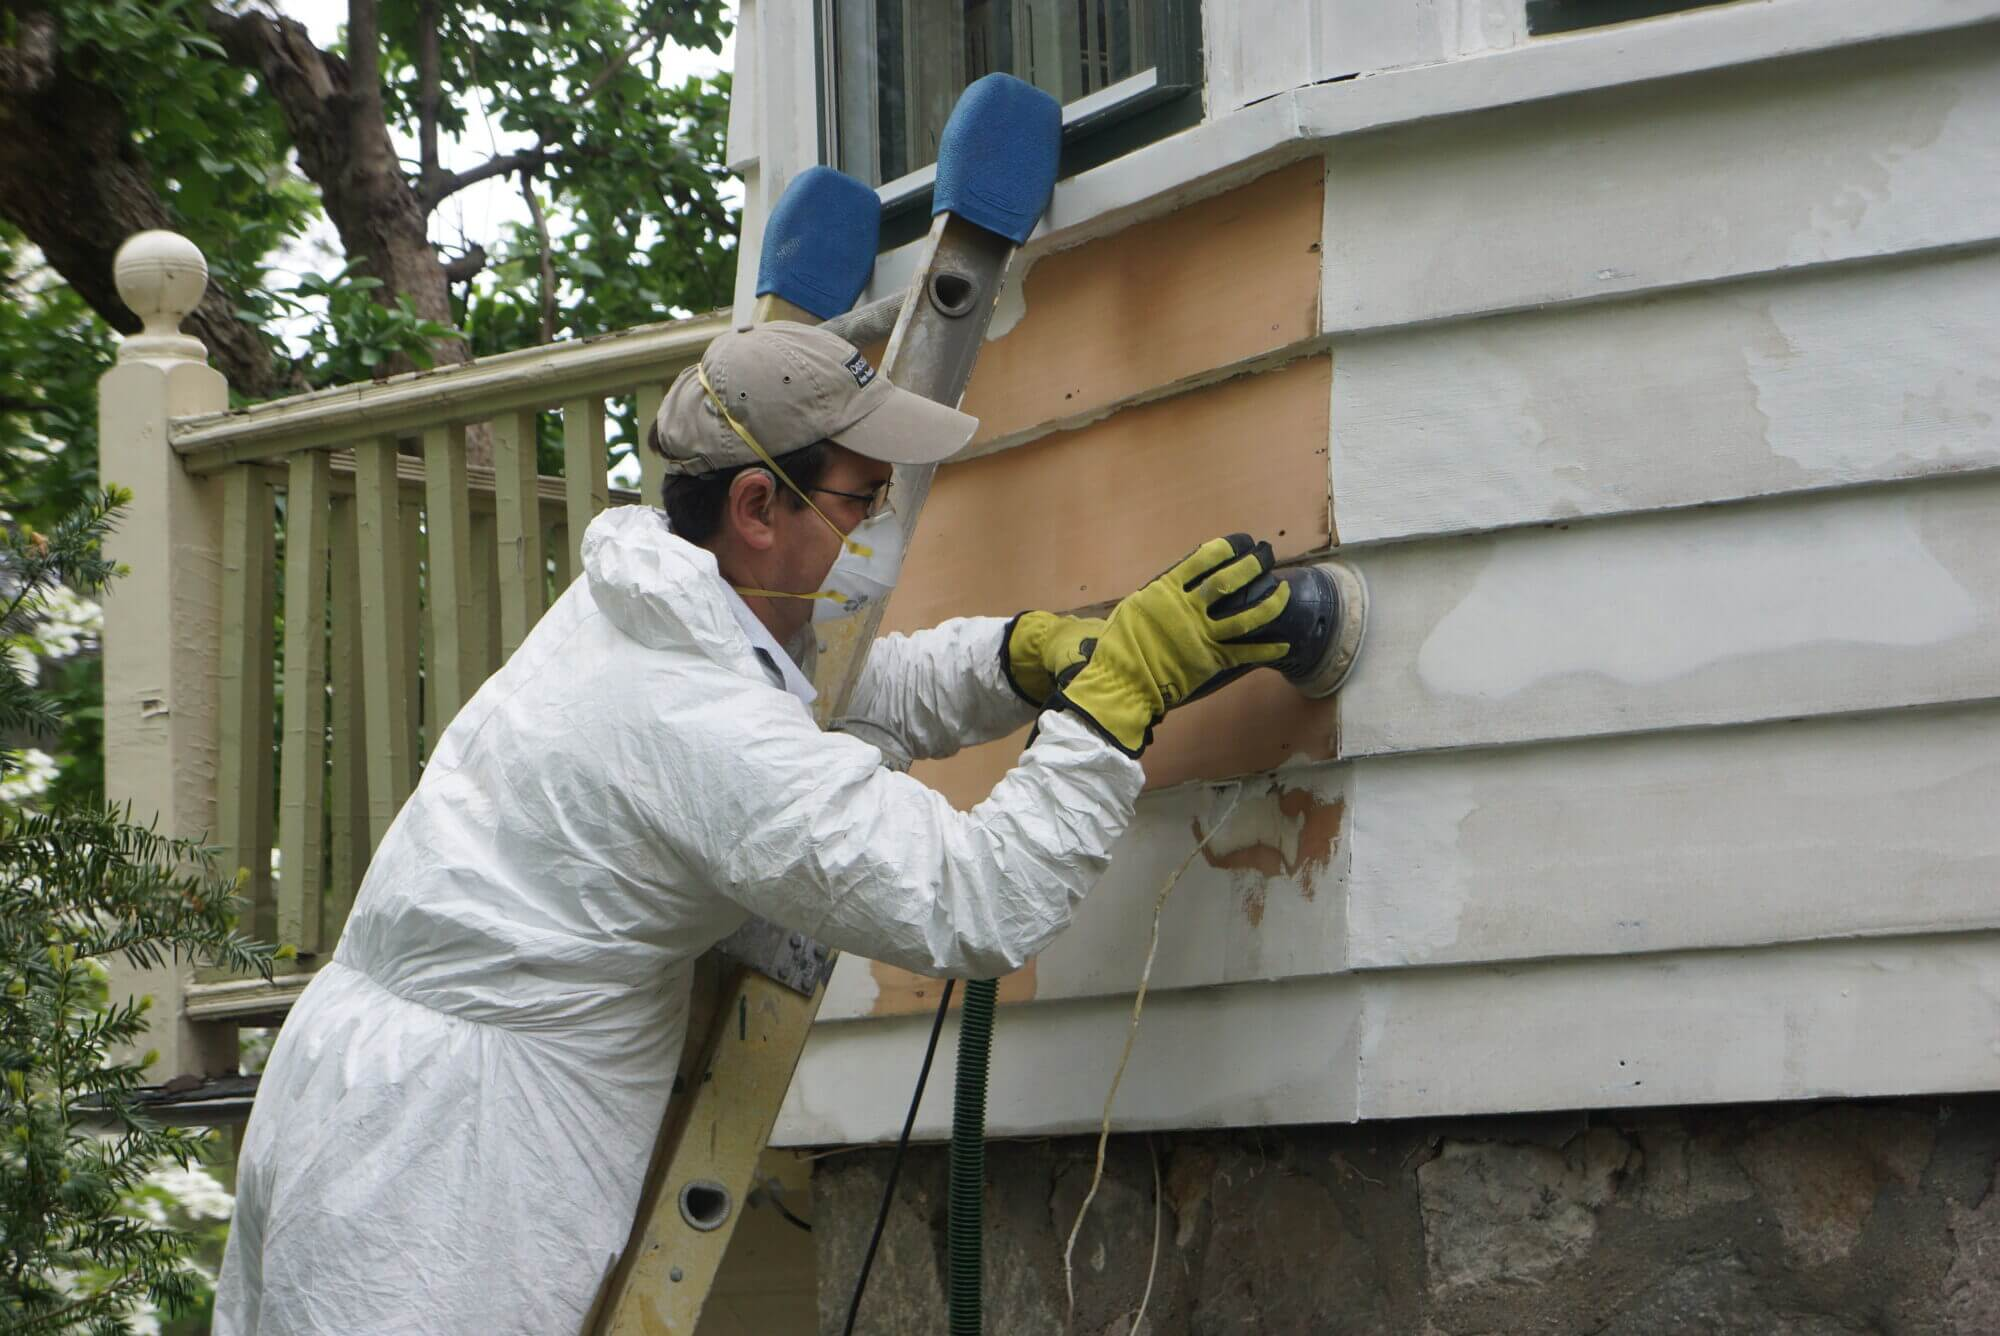 employee using a sander on home exterior